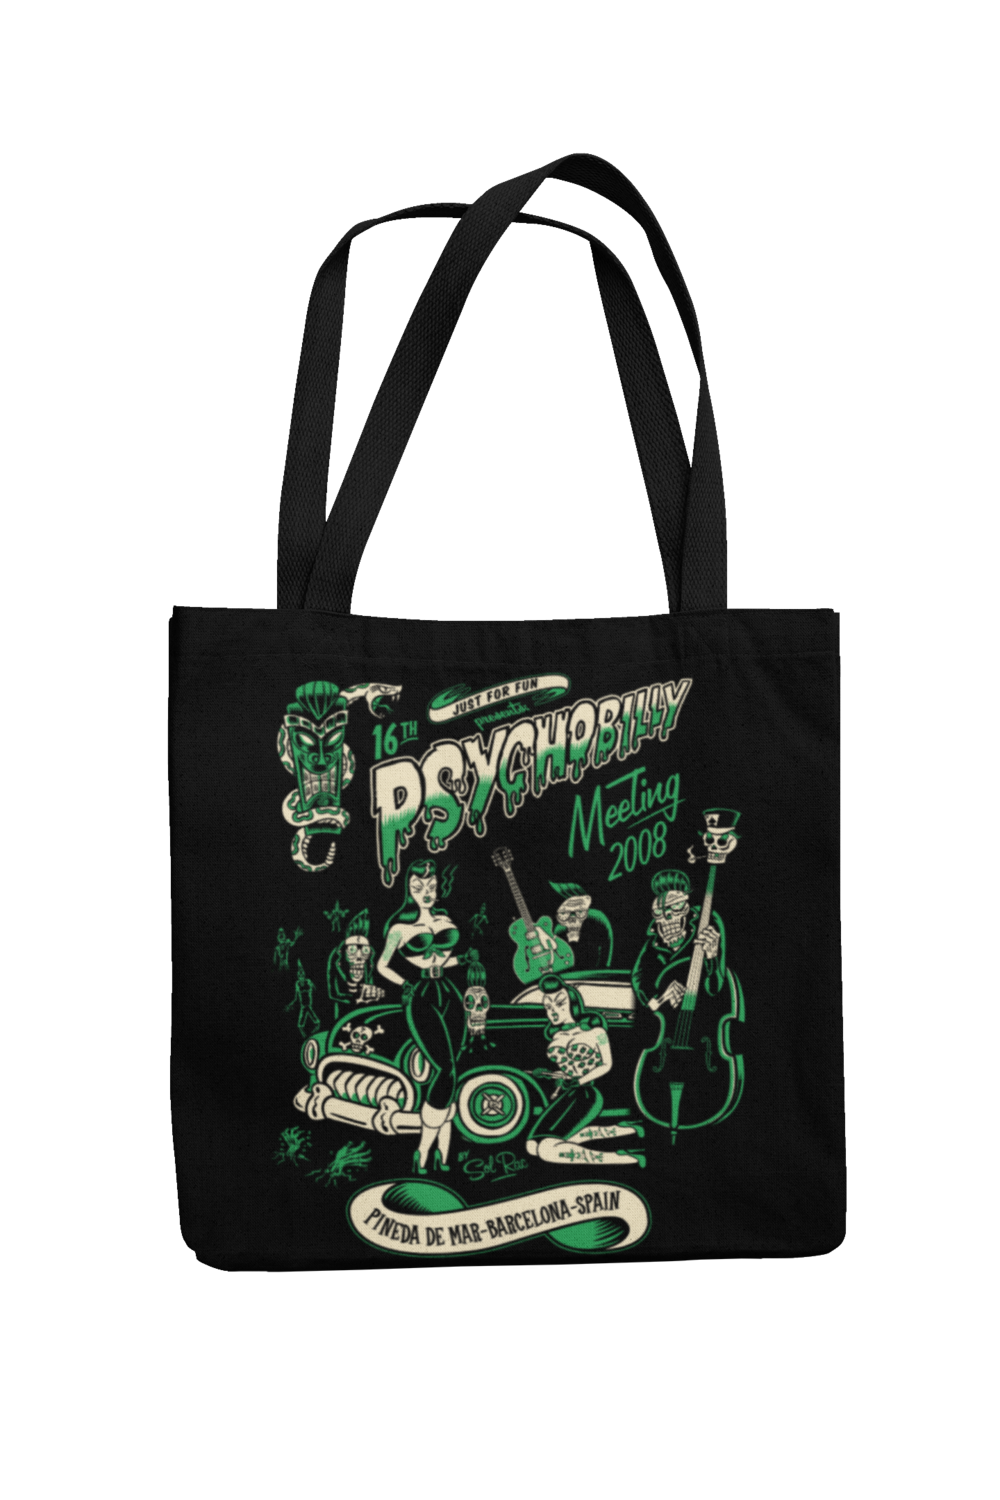 Cotton Bag Psychobilly meeting design by Solrac 2008